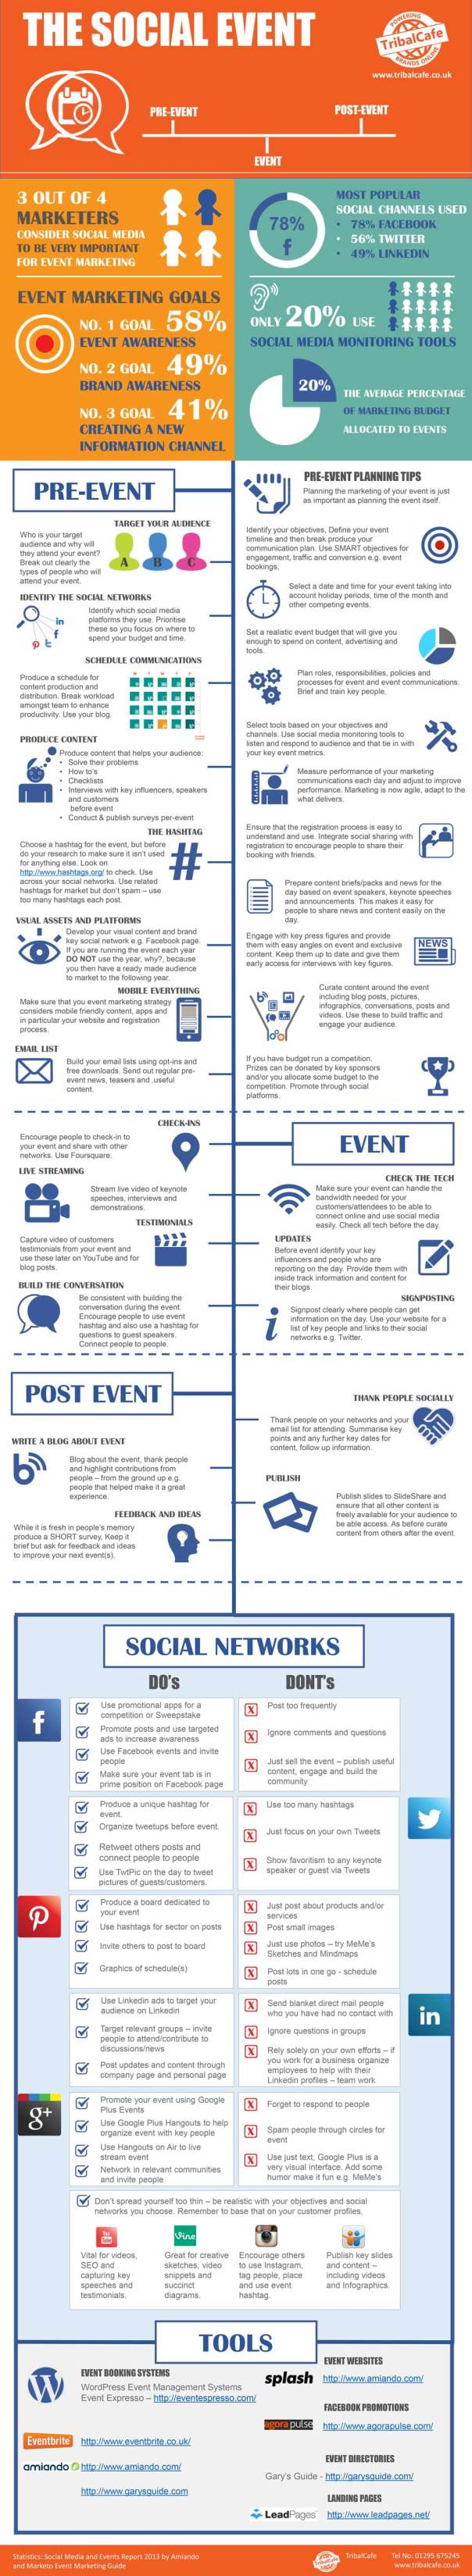 Manage your next event with social media - infographic